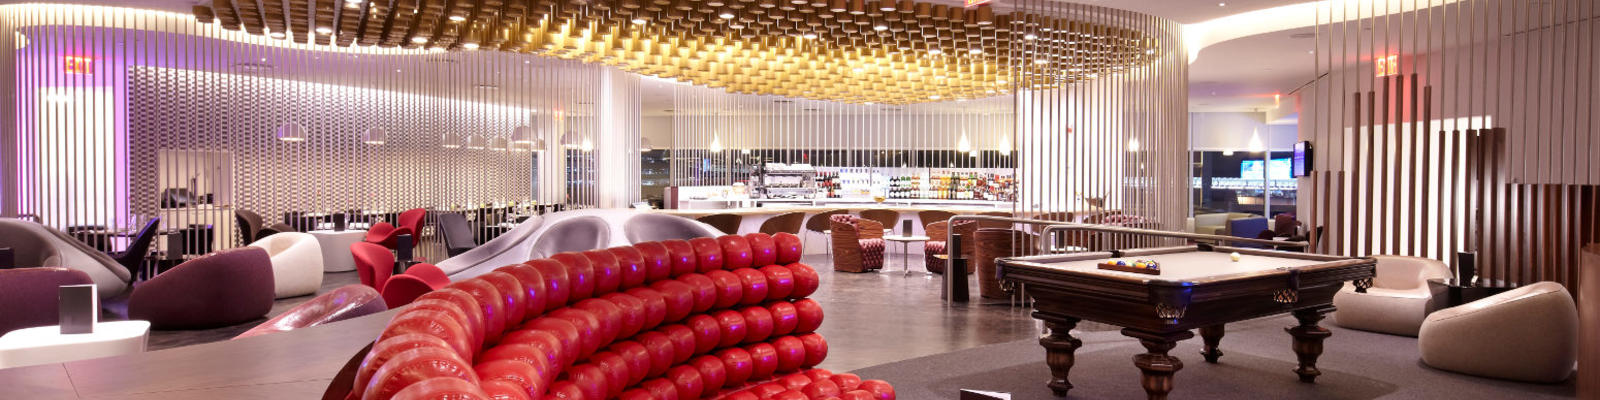 An interior view of the Virgin first class lounge in New York